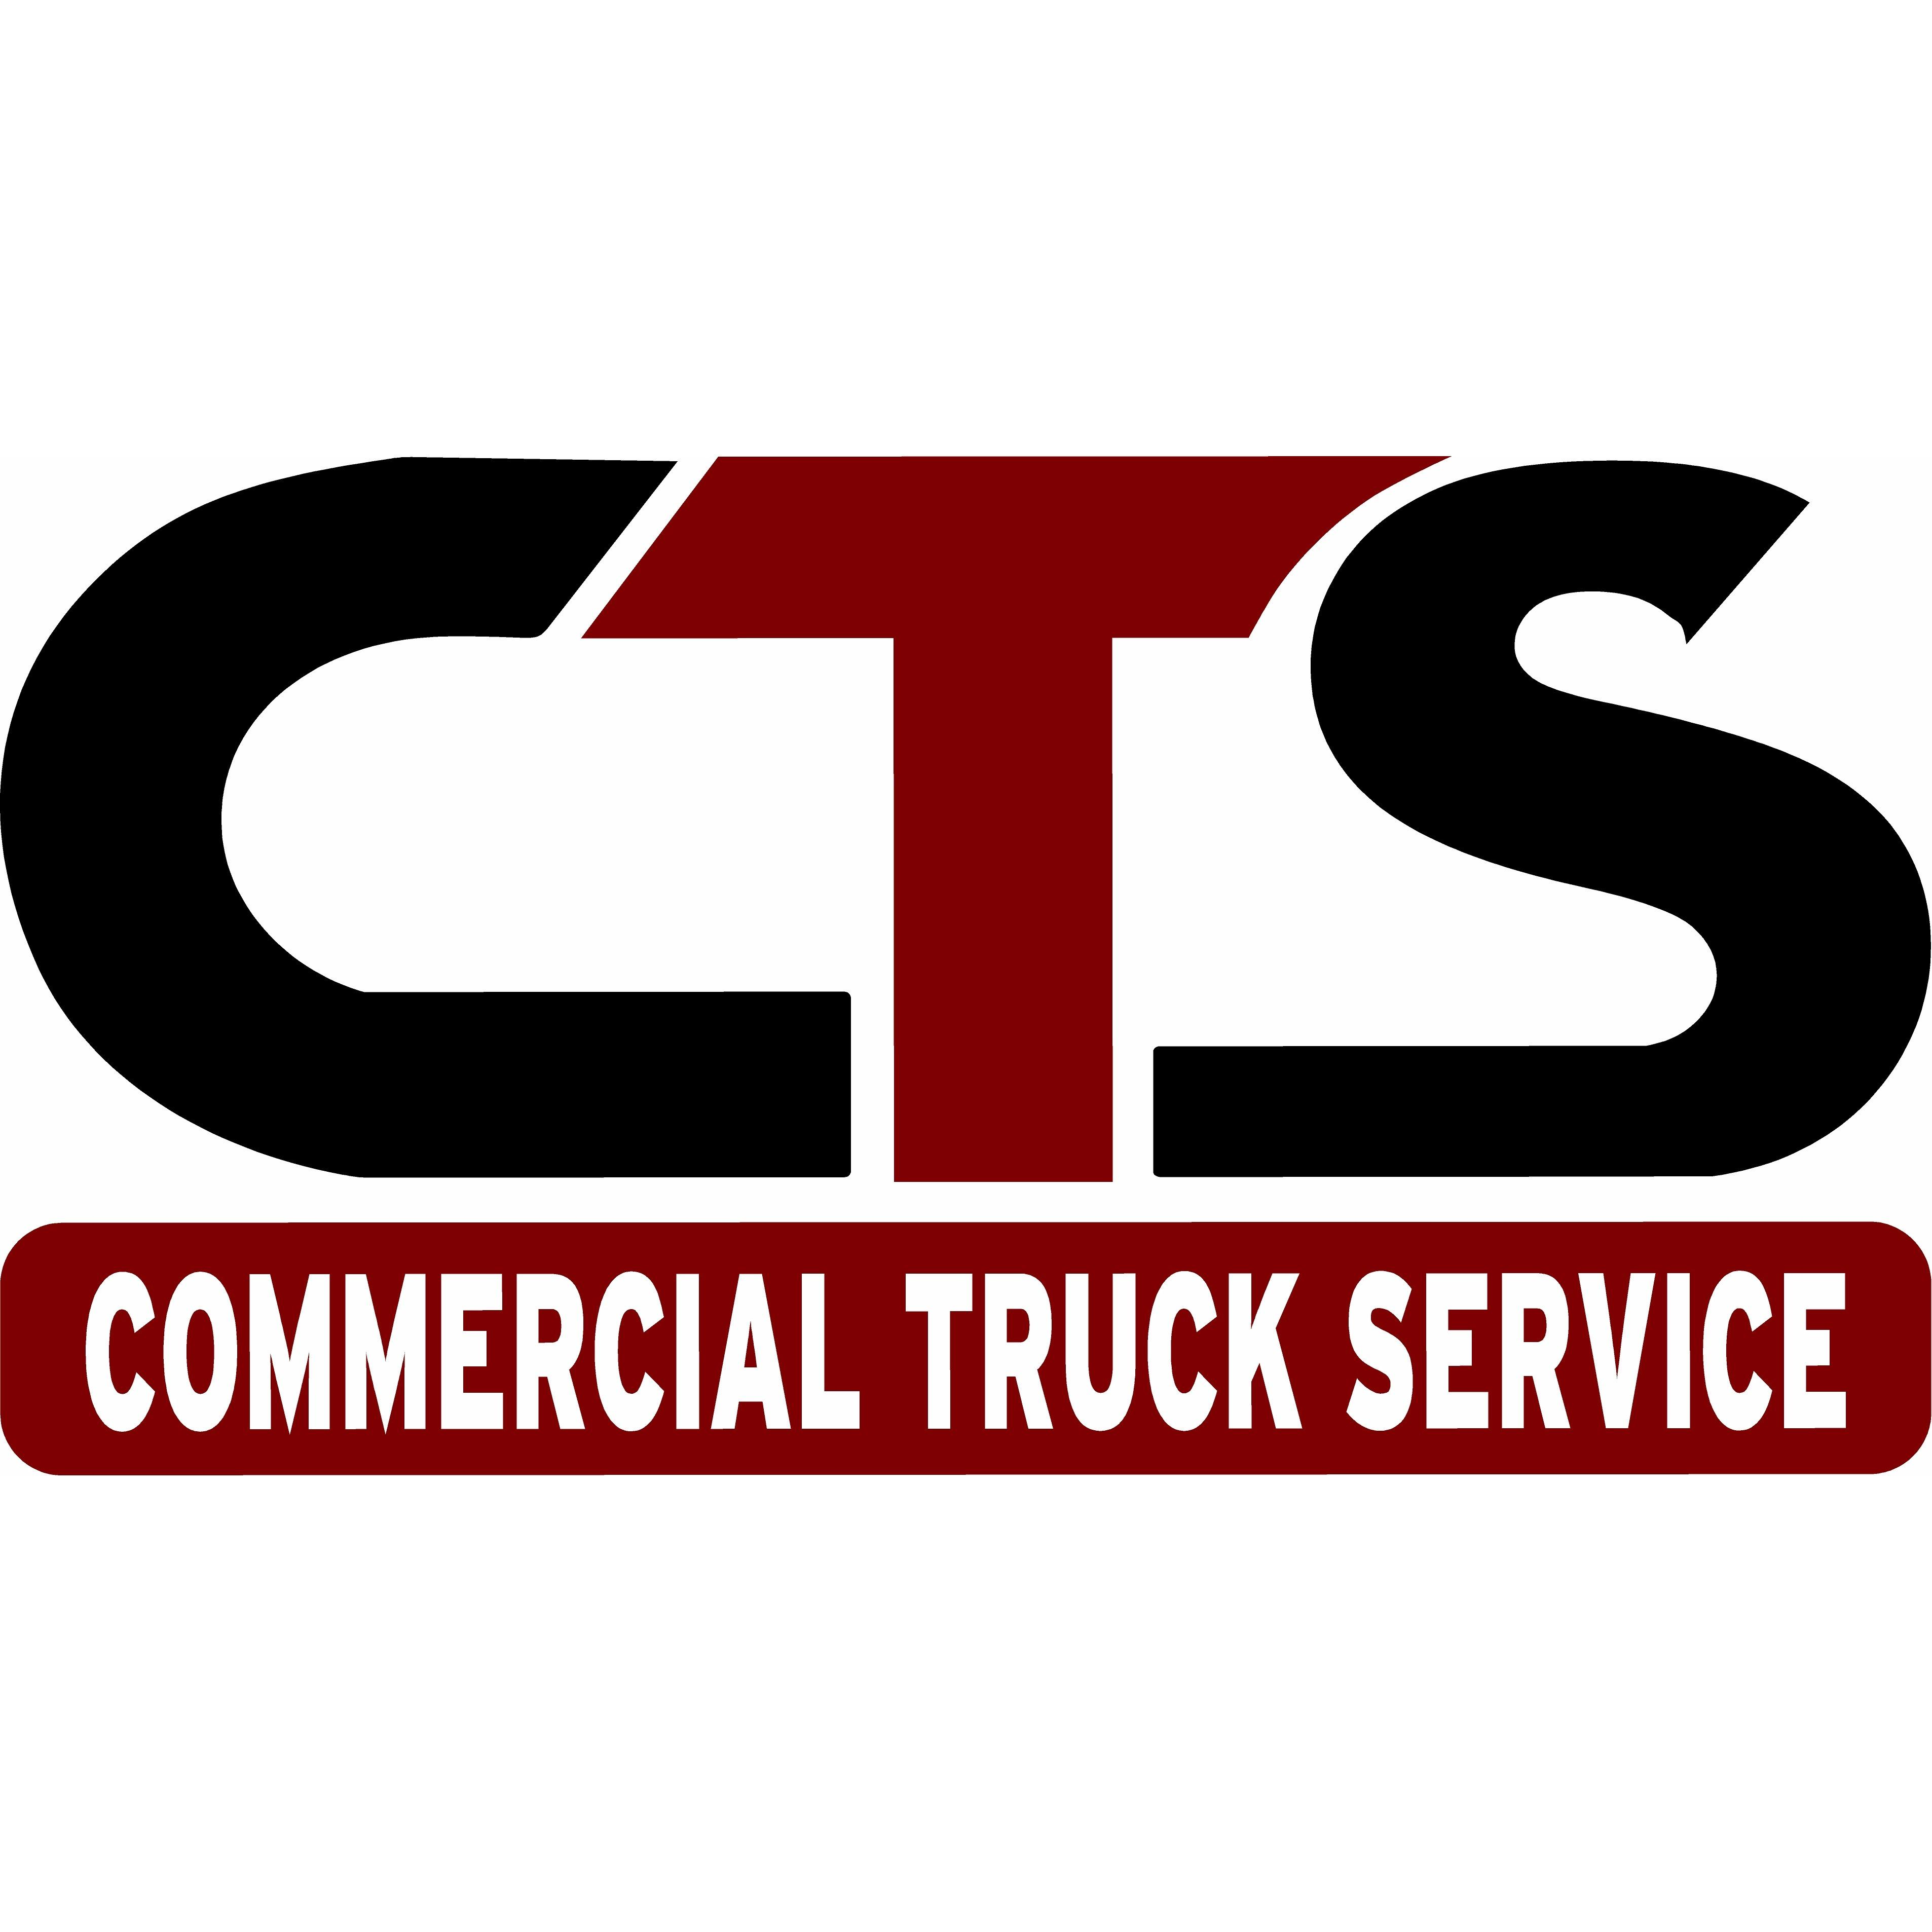 Commercial Truck Service - Conway, AR - Auto Body Repair & Painting